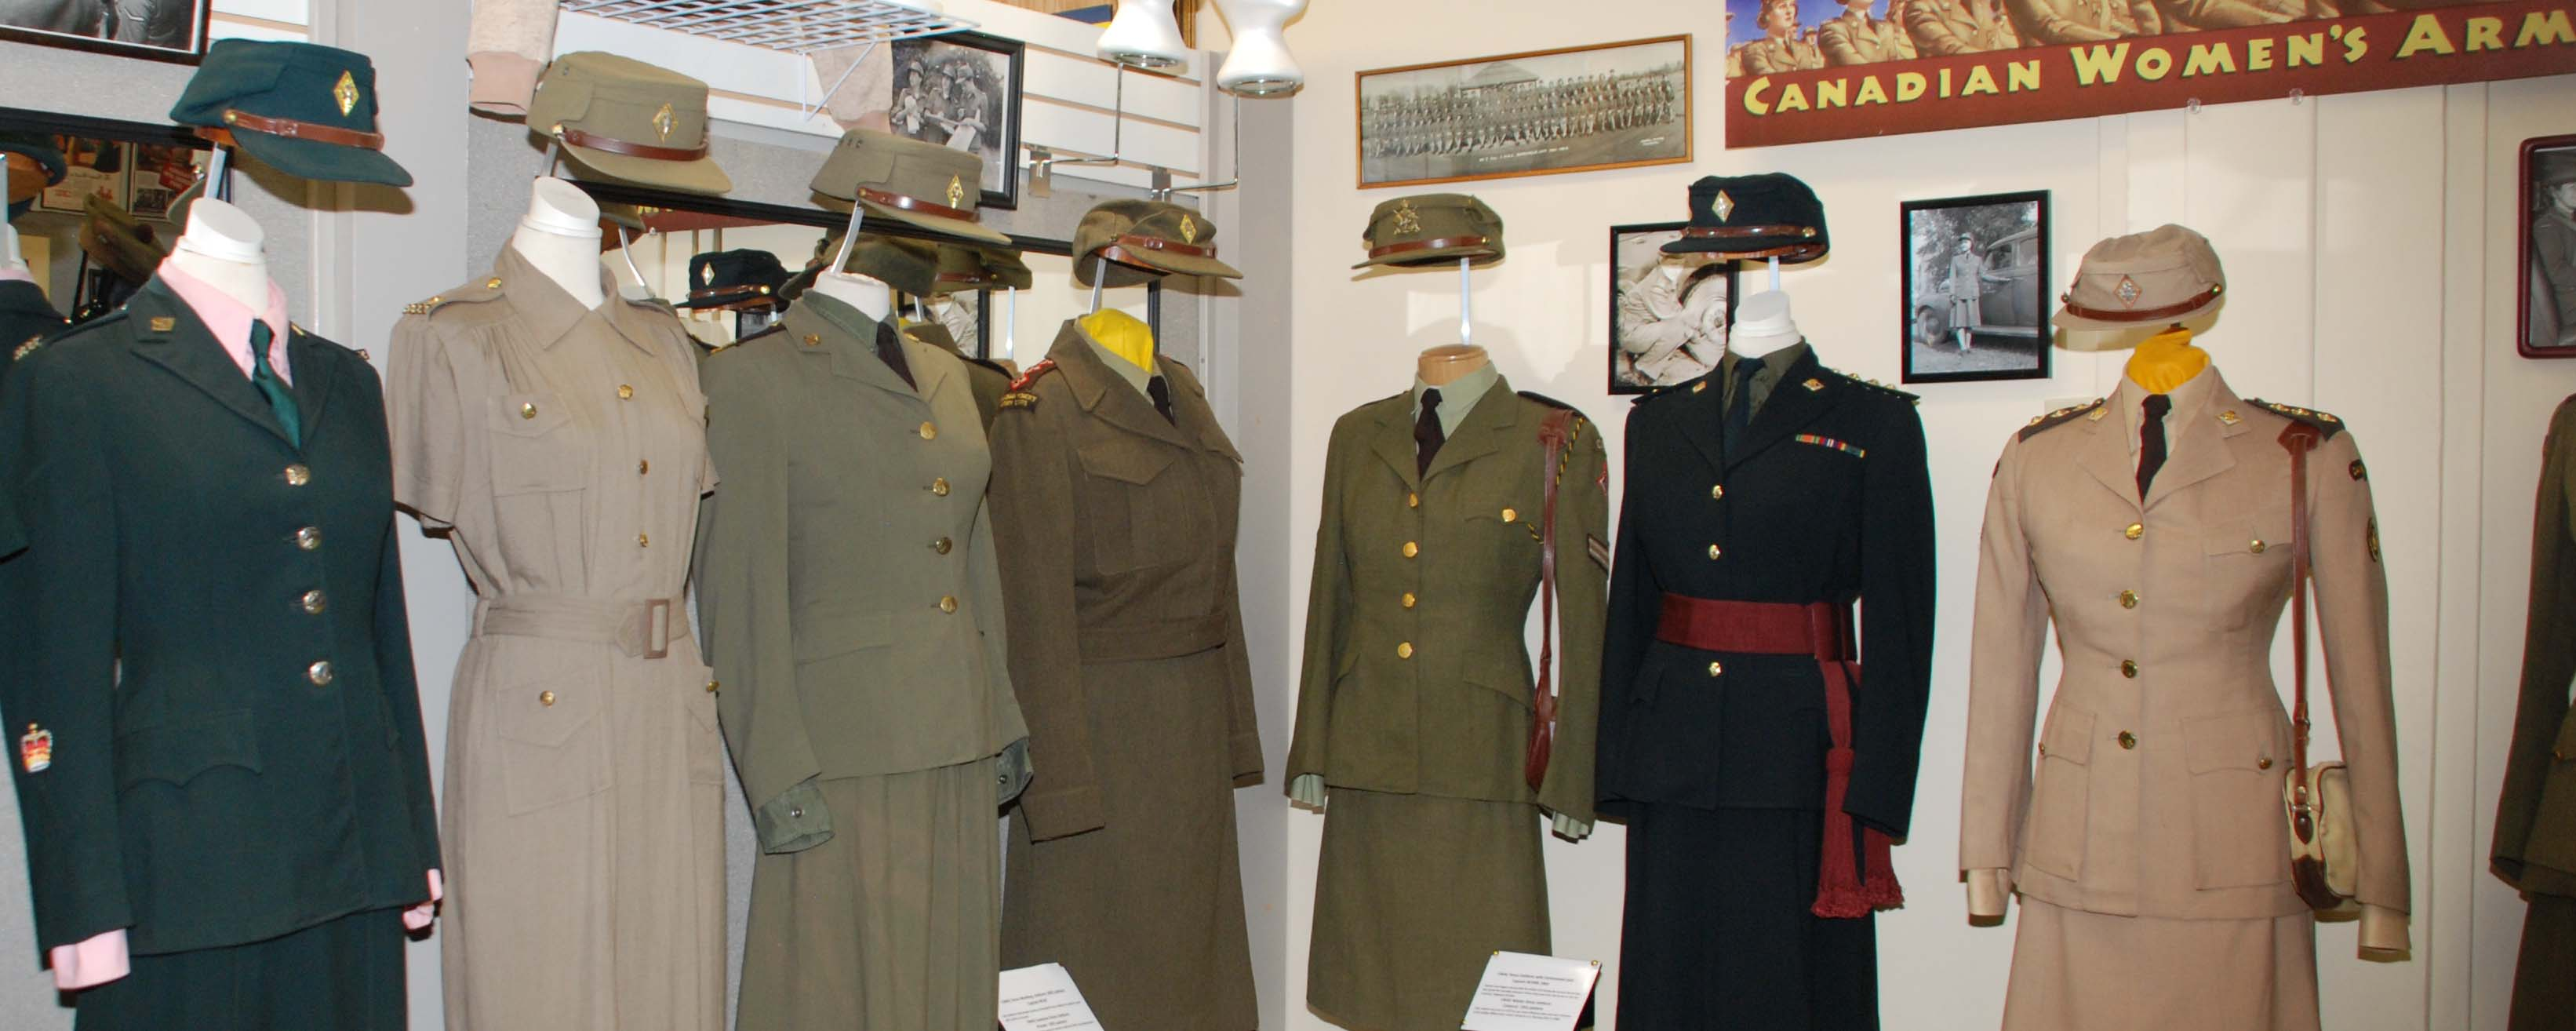 A museum display of seven examples of Canadian female military uniforms from various points in history